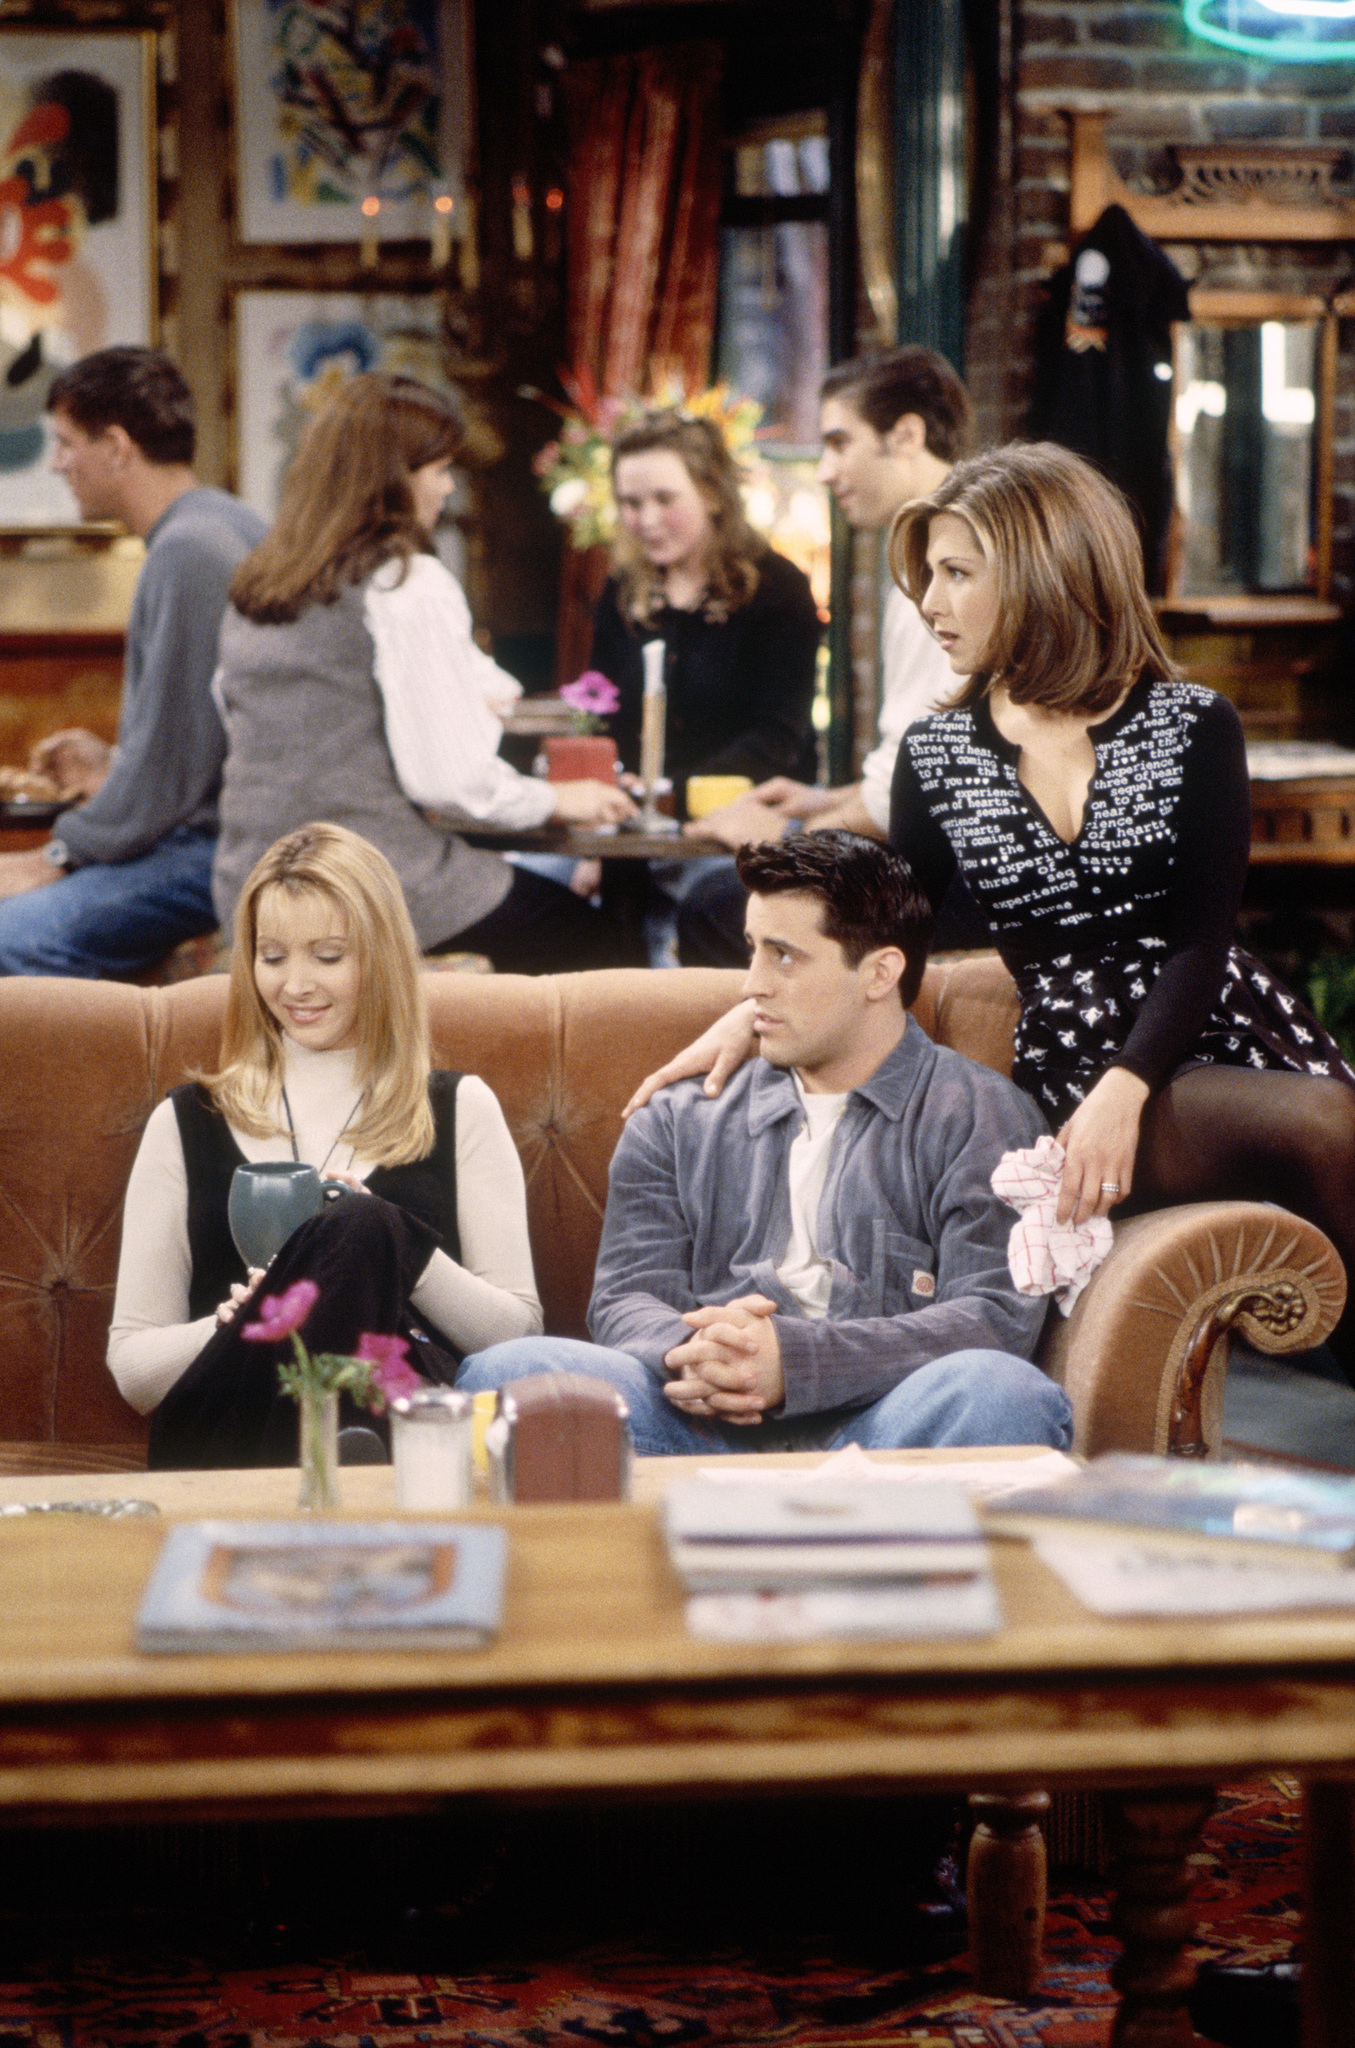 Friends: The One After the Superbowl: Part 2 | Season 2 | Episode 13